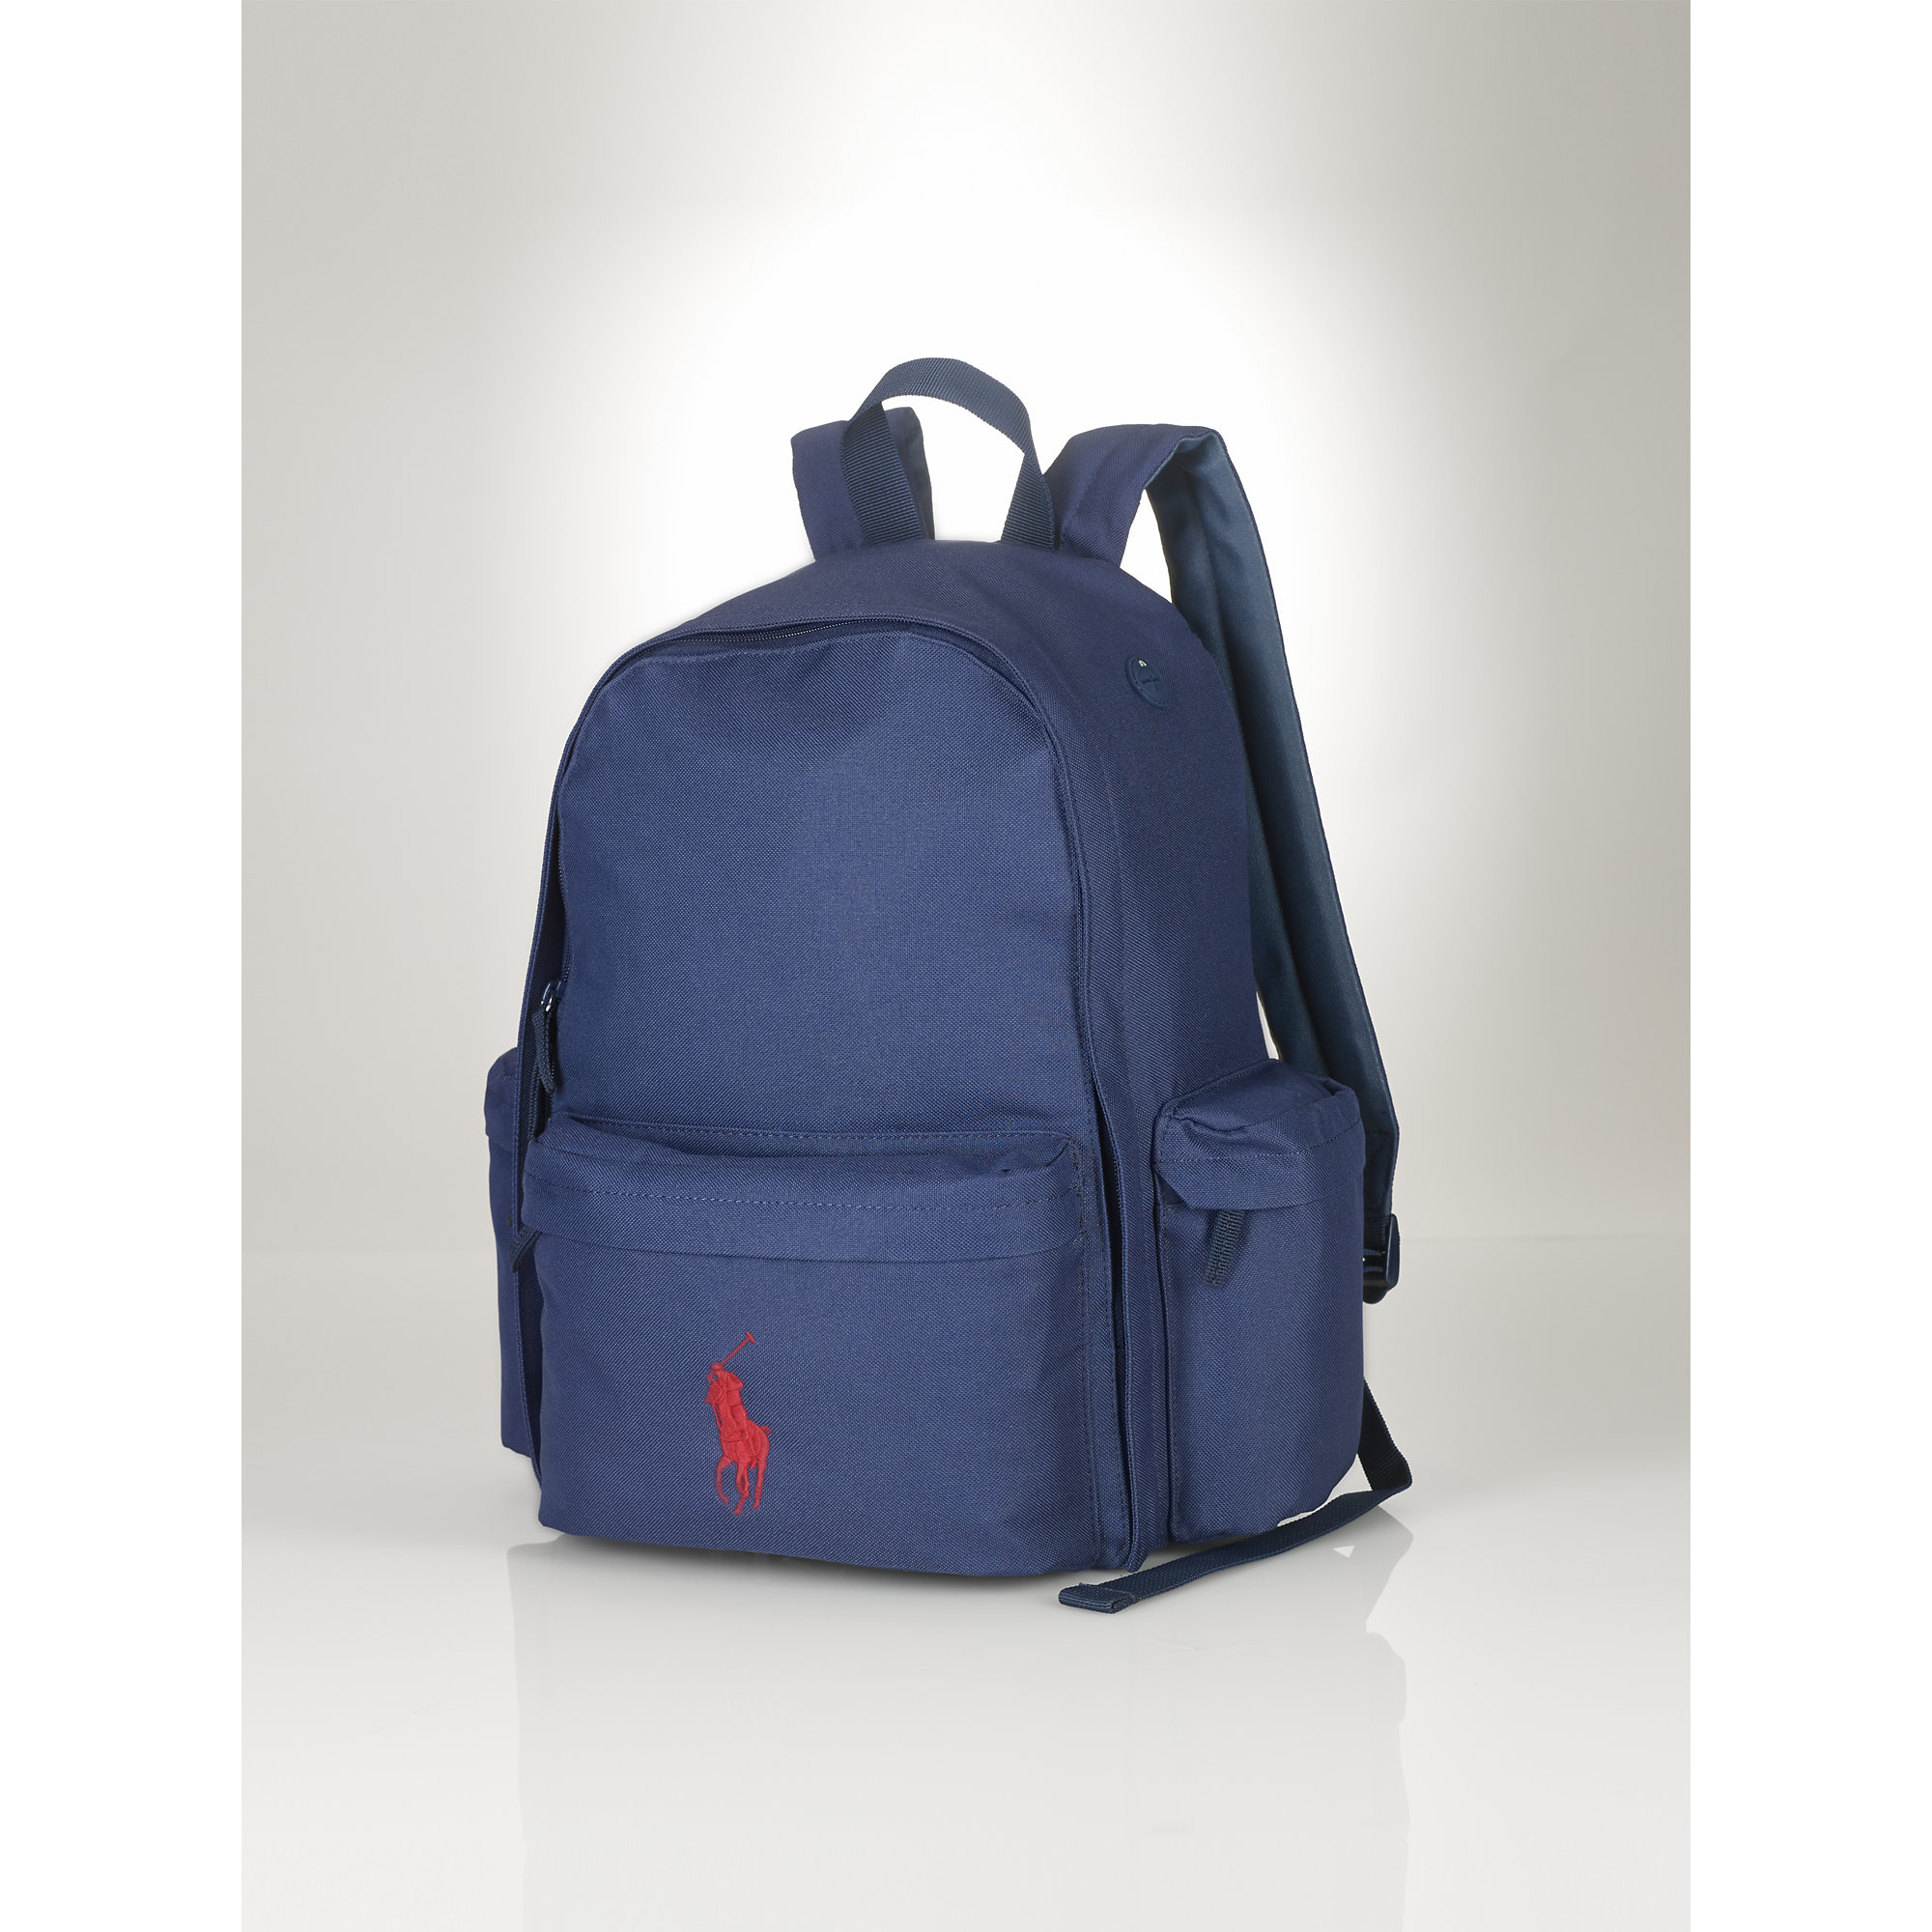 a8f5fde63174 ... lyst ralph lauren large big pony backpack in blue ...